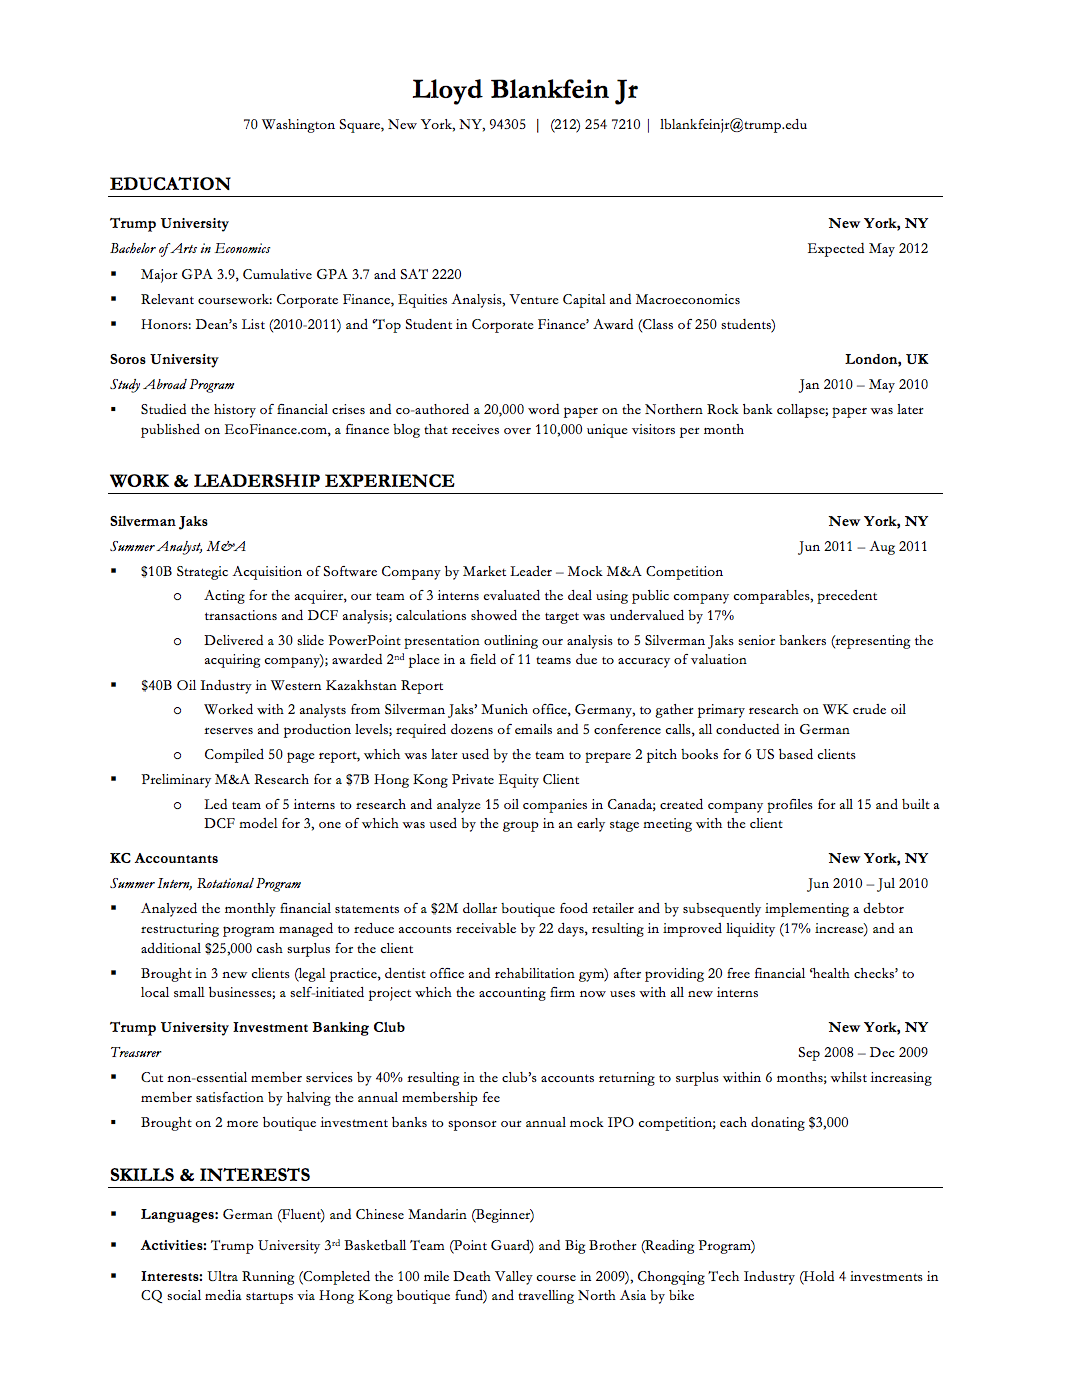 Investment banker resume sample httpresumecareerfo investment banker resume sample fancy plush design mergers and inquisitions resume template 1 yelopaper